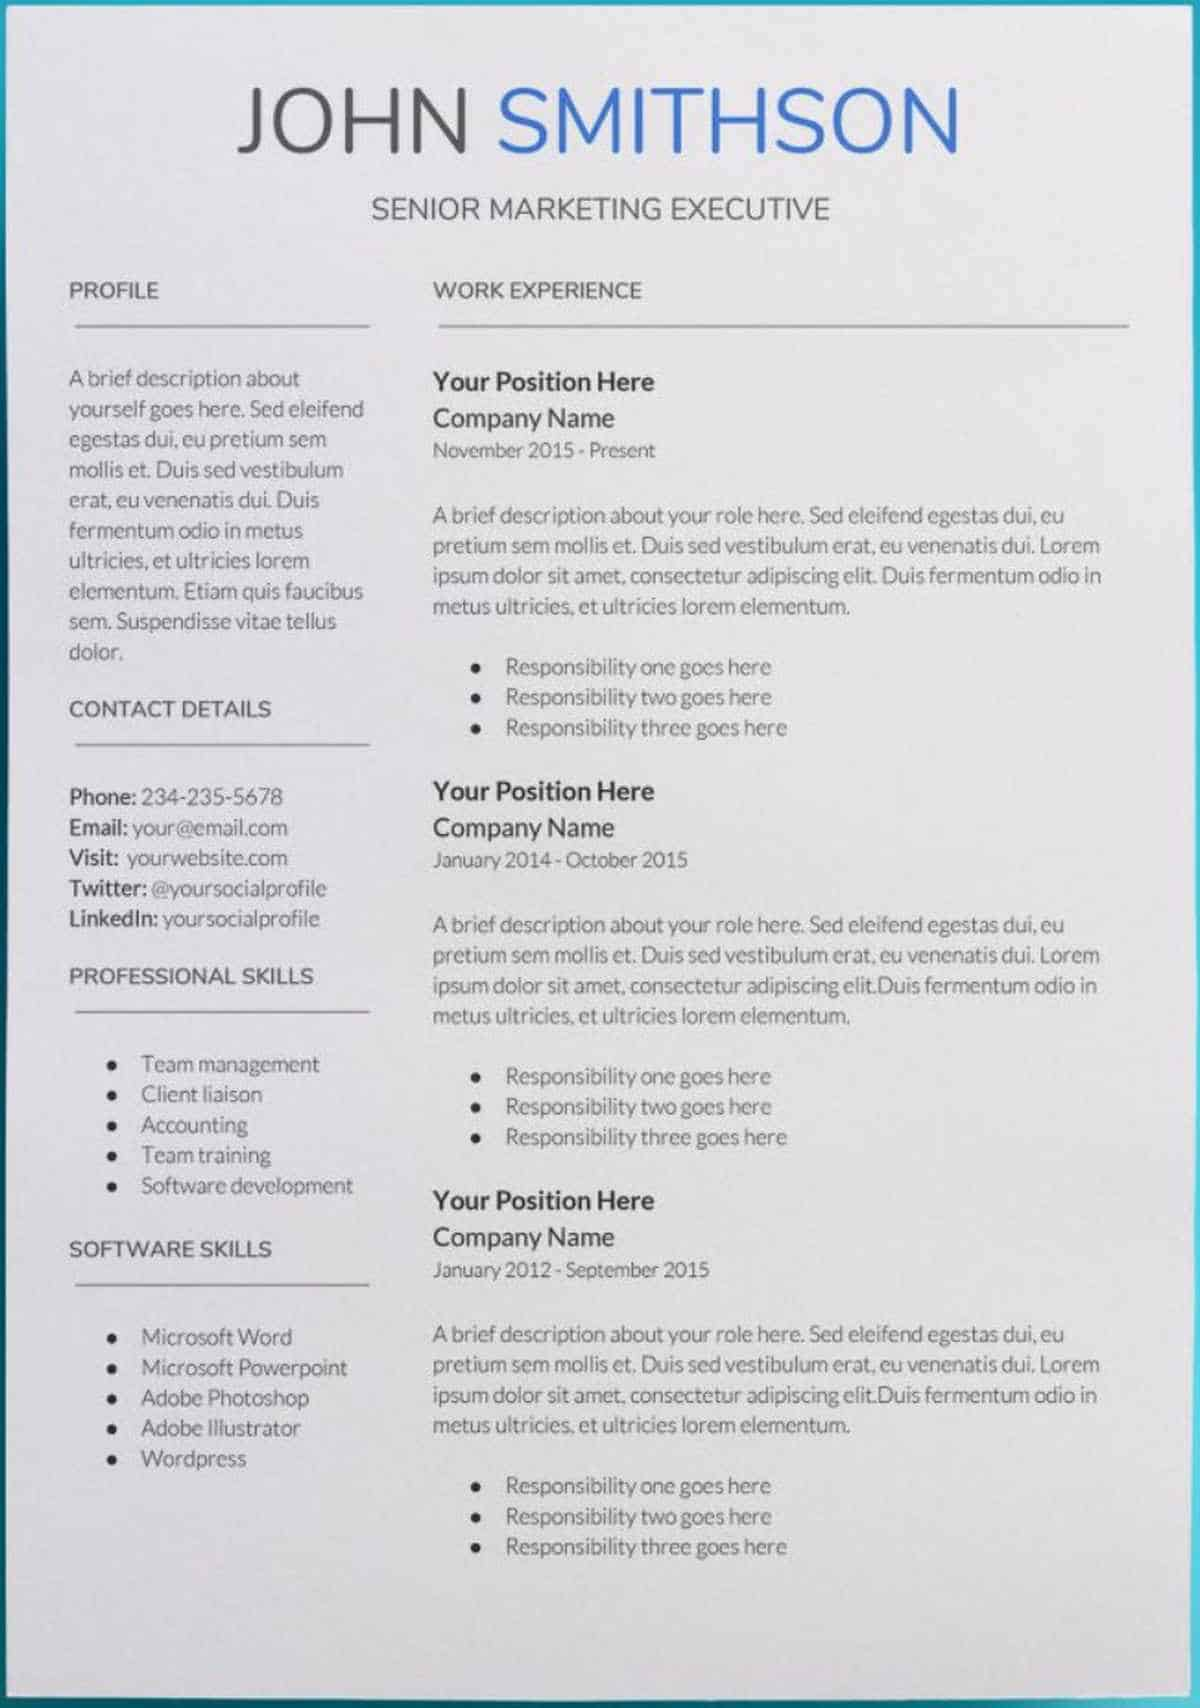 google docs resume templates downloadable pdfs template saturn free should you follow up Resume Template Resume Google Docs